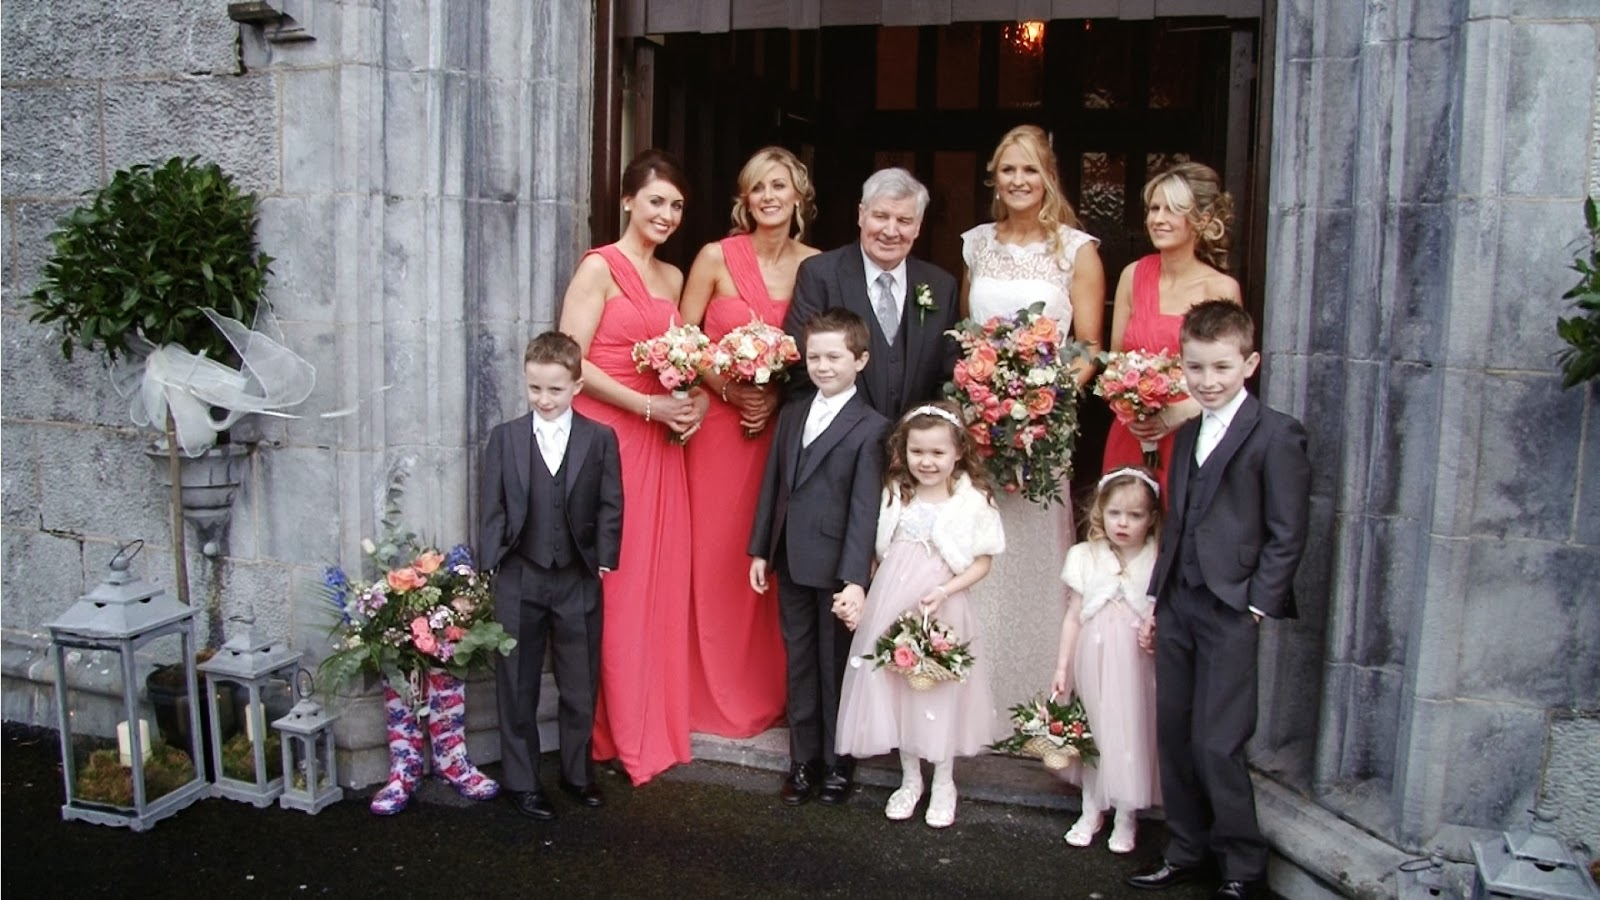 Anne gleeson wedding